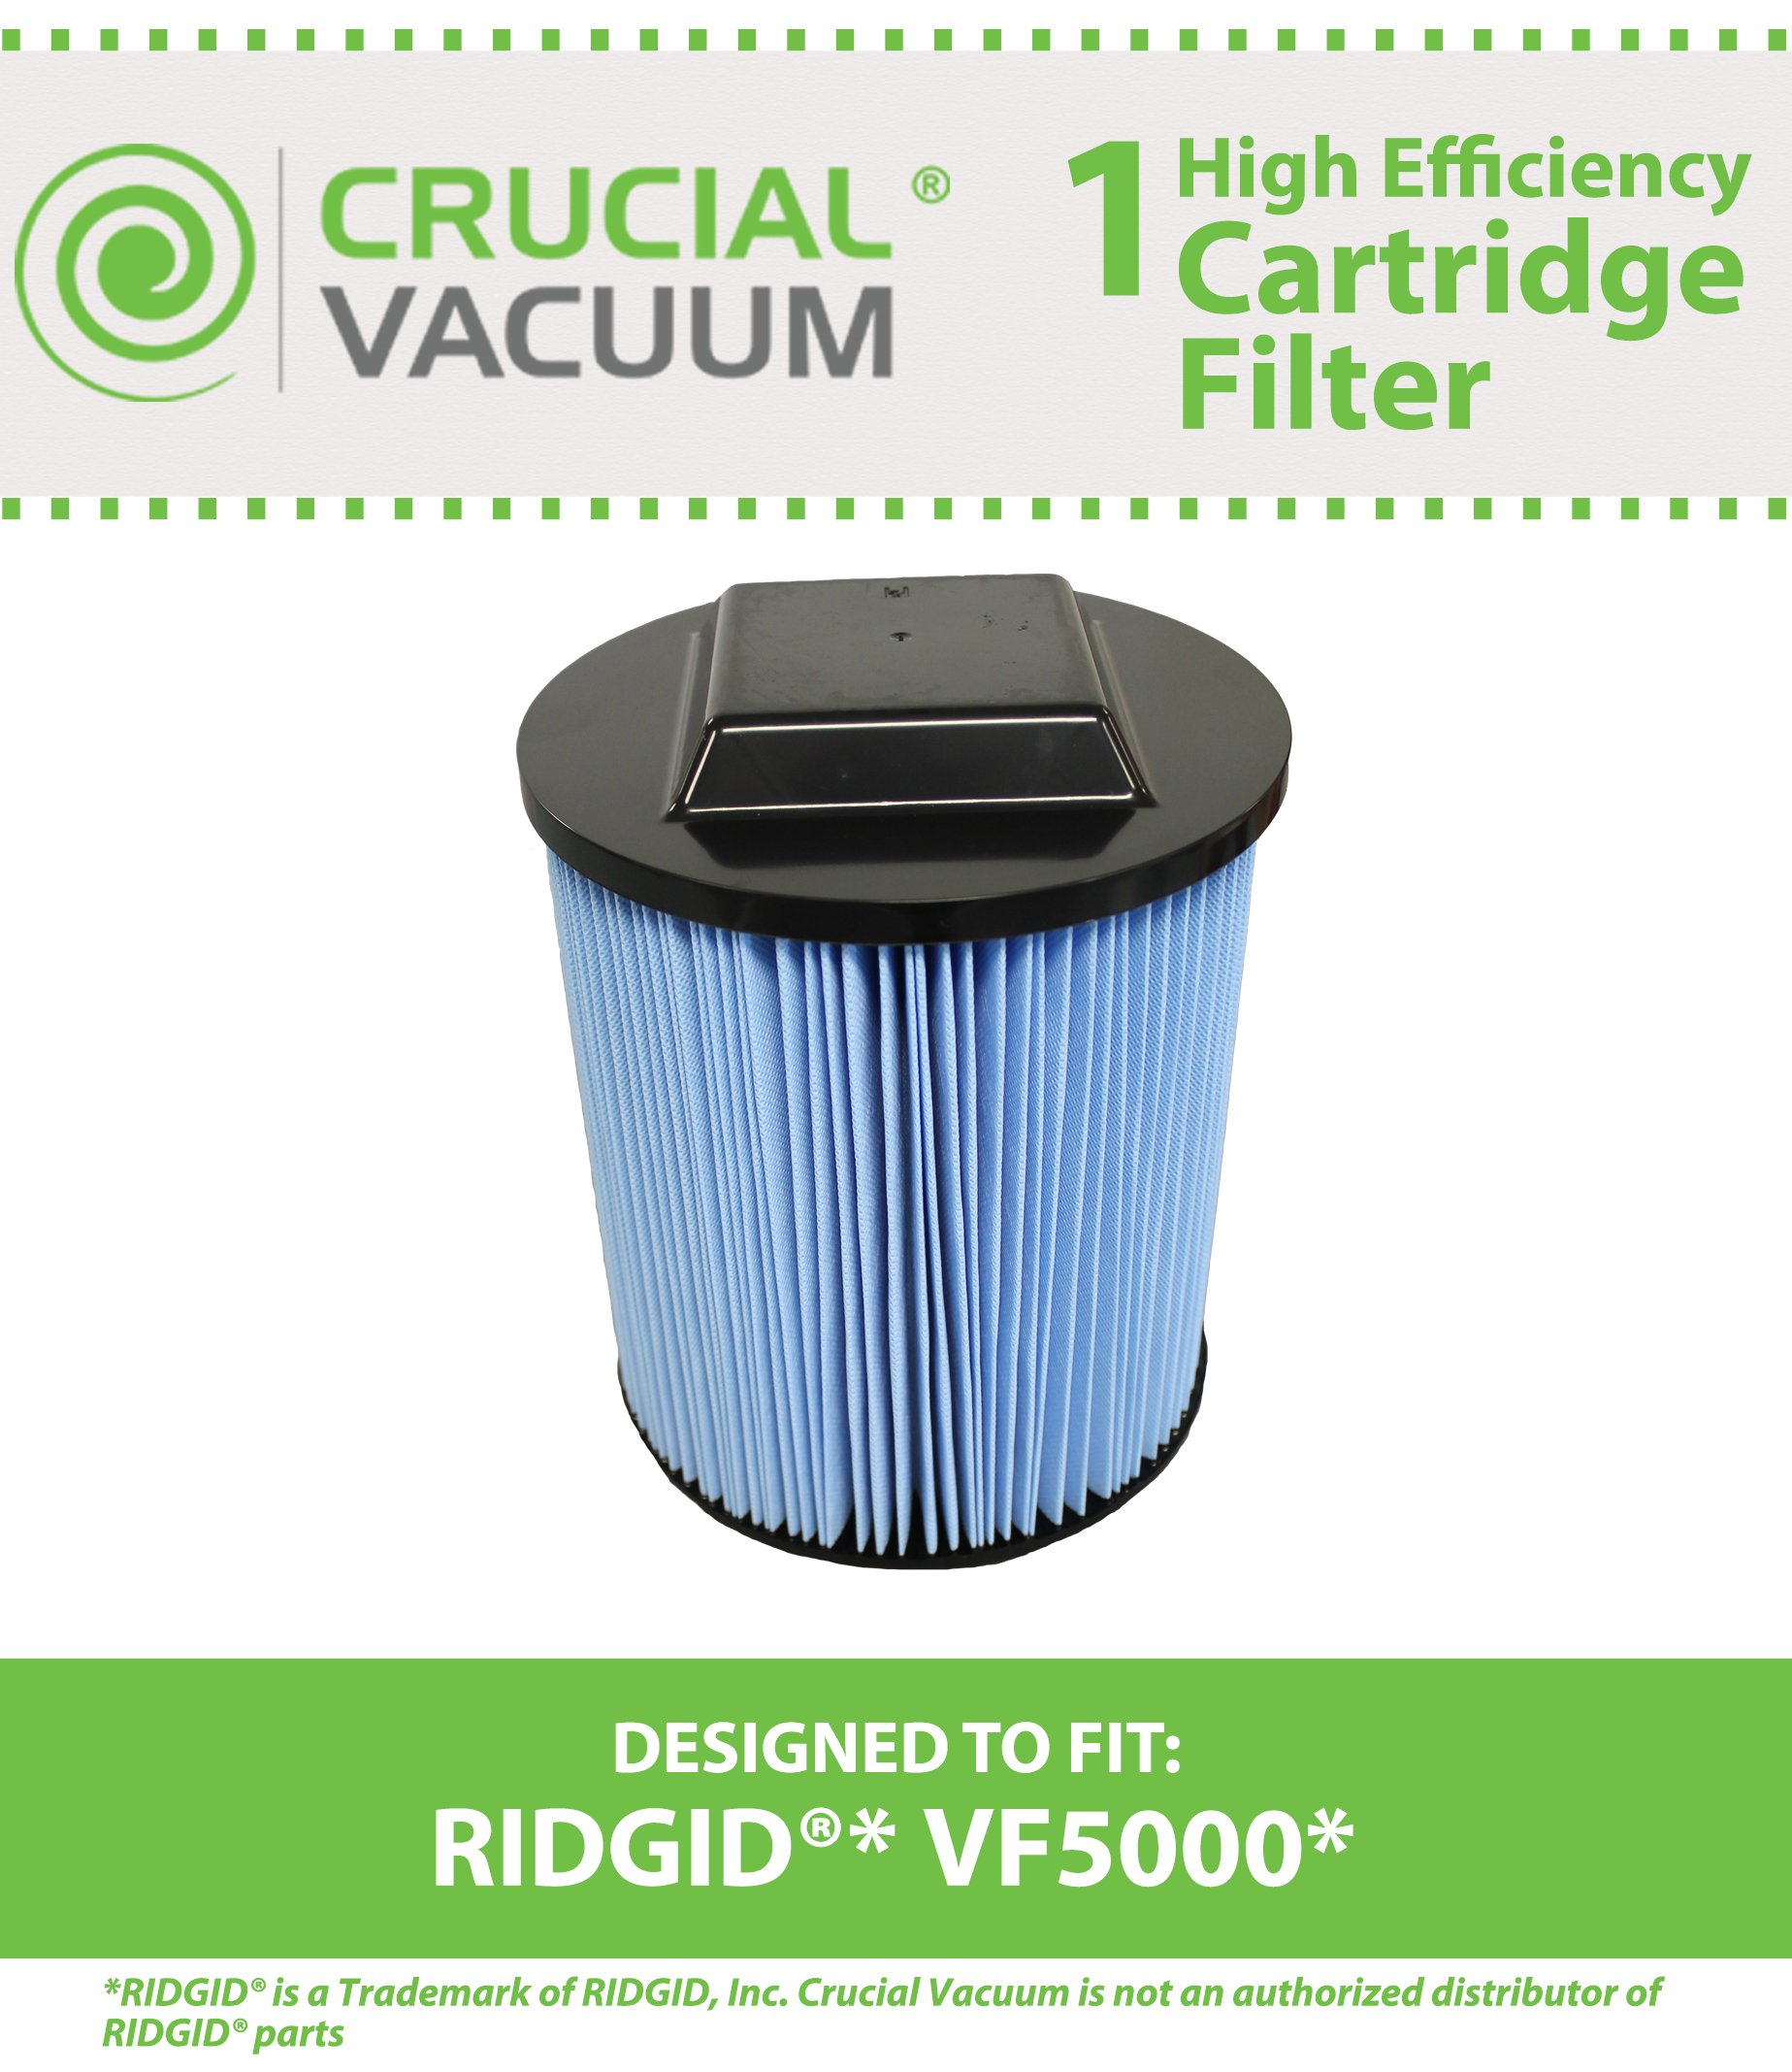 Think Crucial Replacement for Ridgid VF5000 Filter Cartridge Fits 6-20 Gallon Wet & Dry Vacuums, Compatible With Part # VF5000, Washable & Reusable